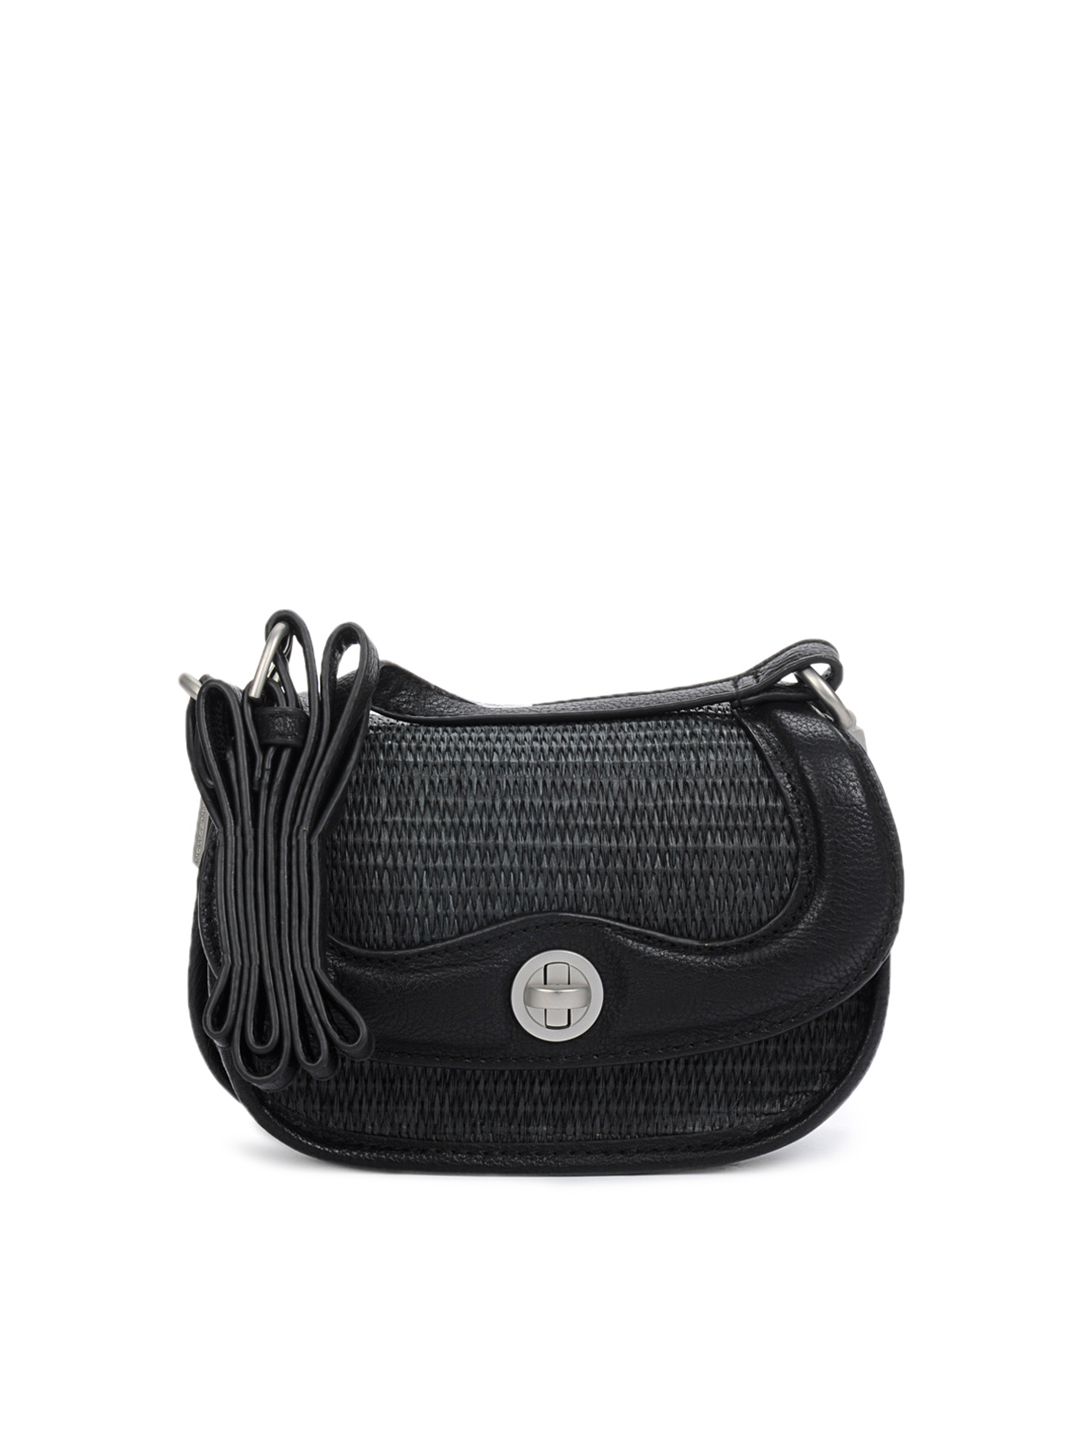 French Connection Women Black Sling Bag